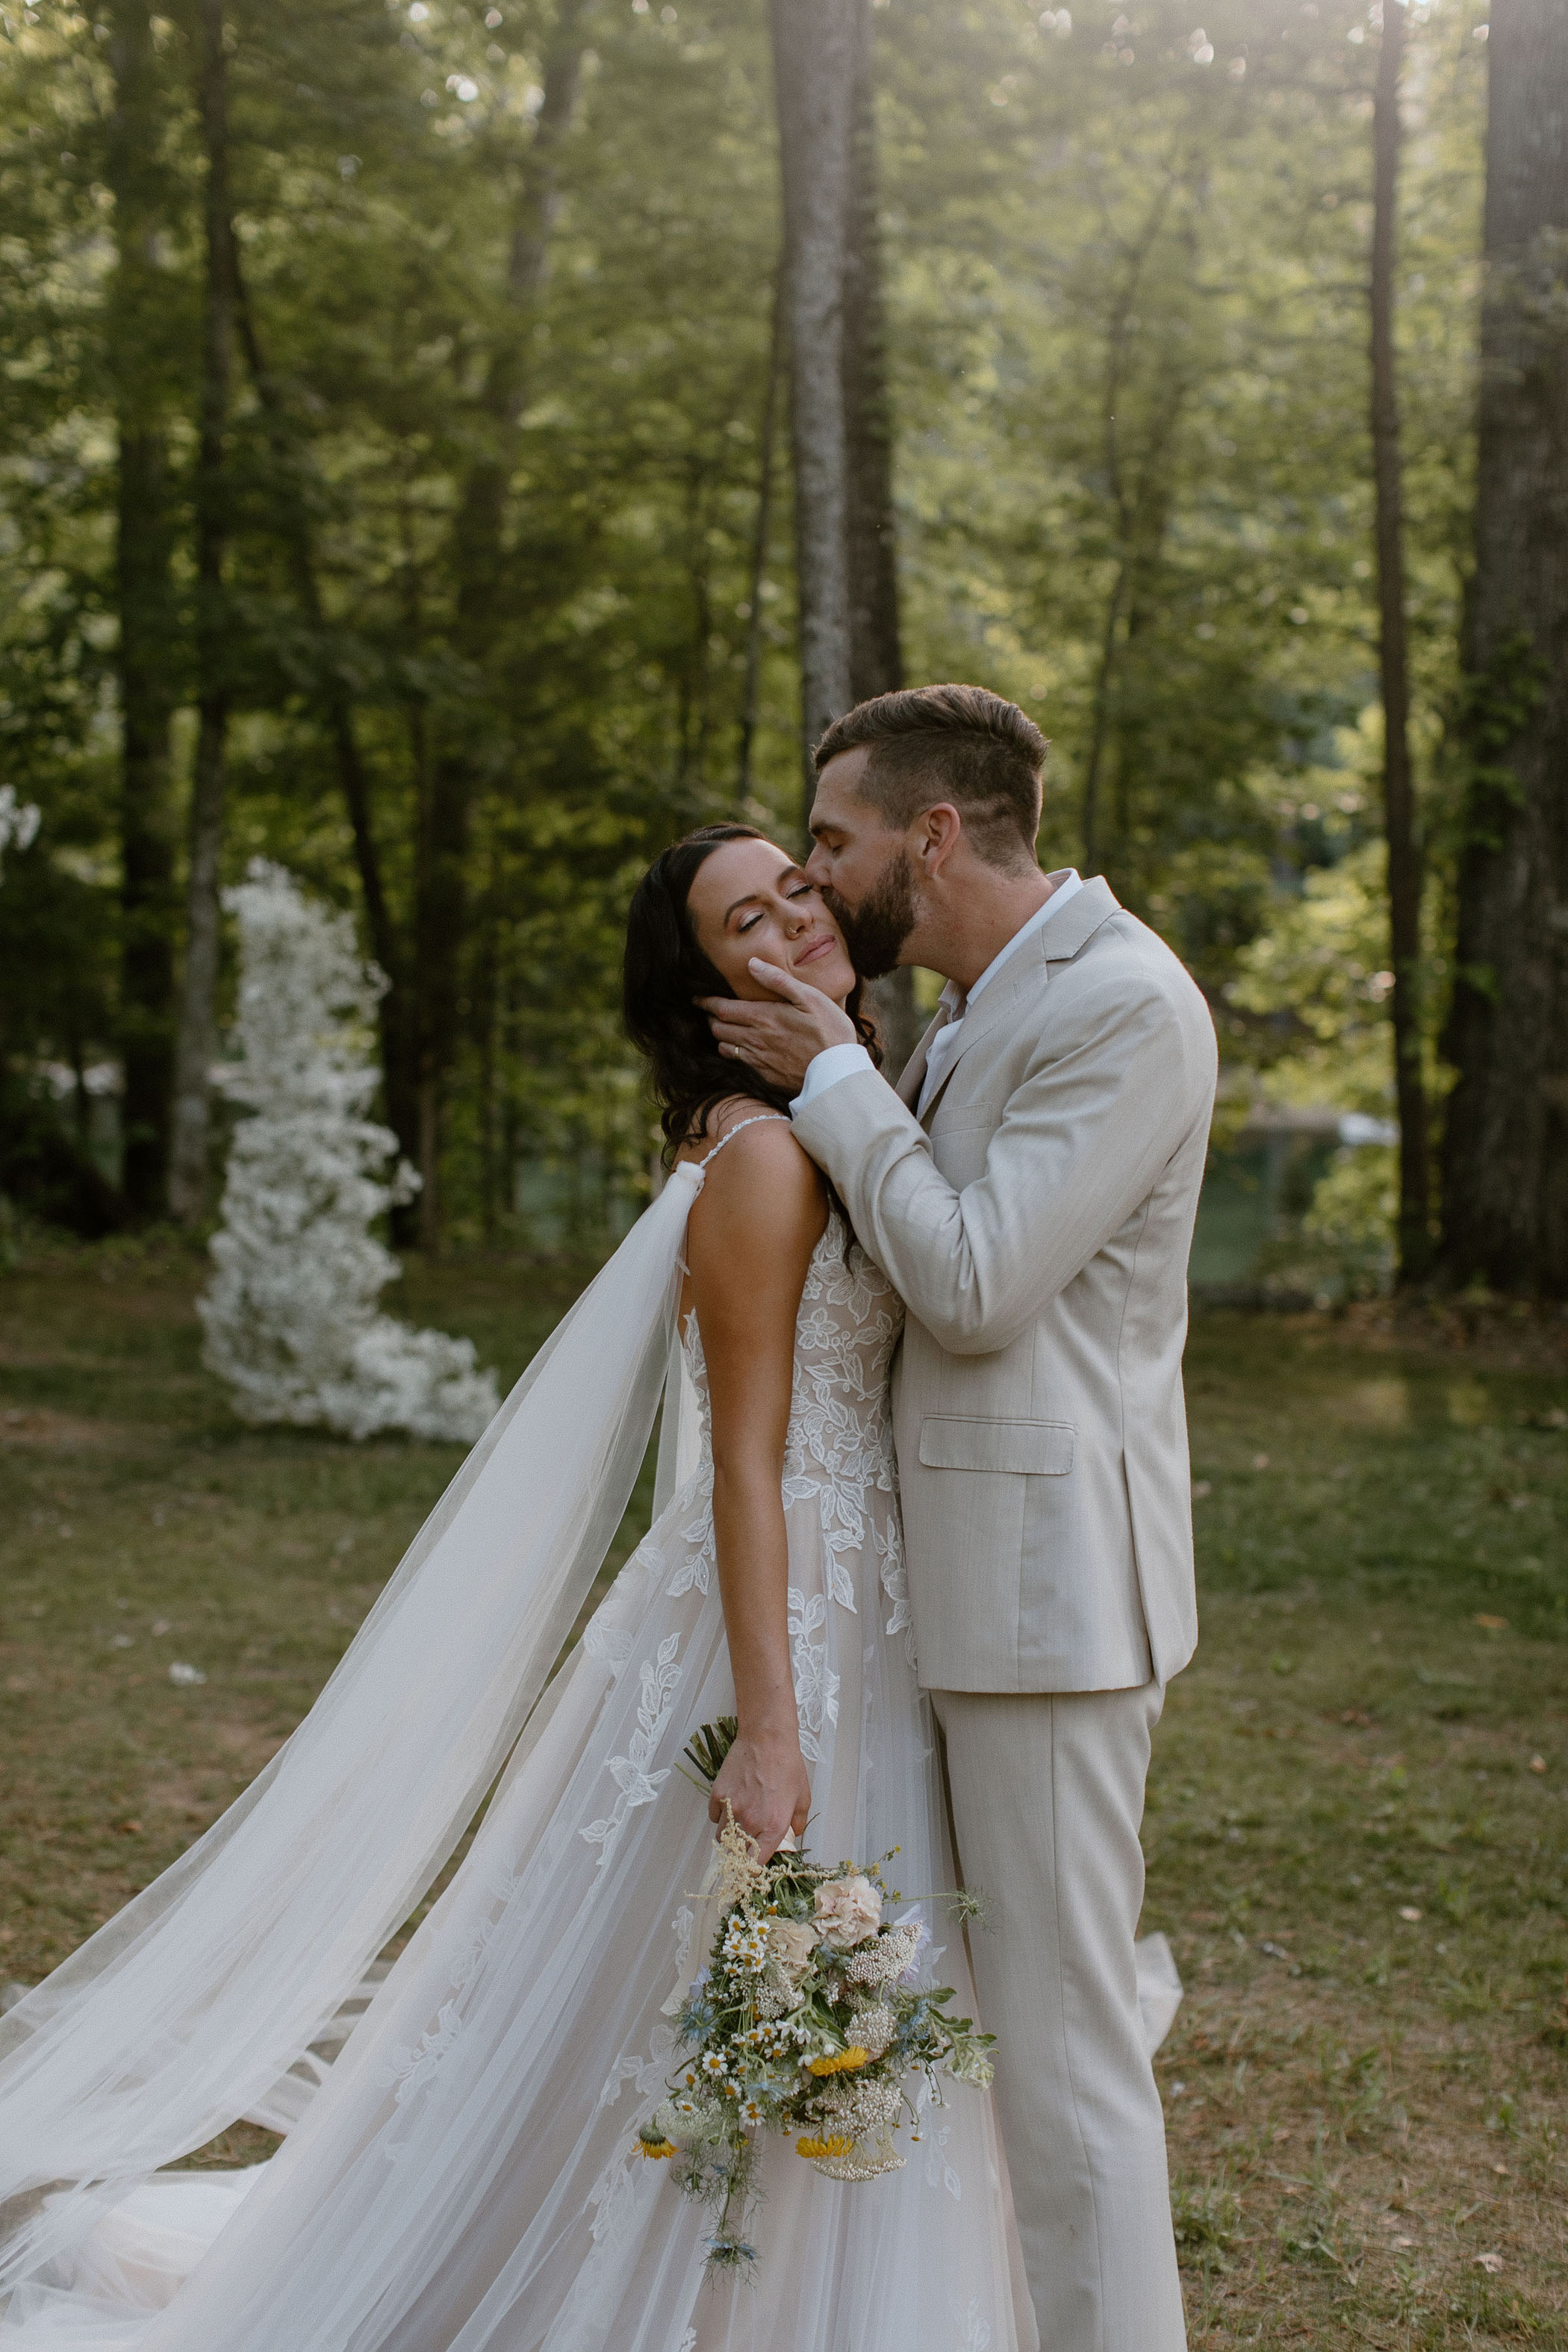 Groom kisses his bride on the cheek in their forest wedding